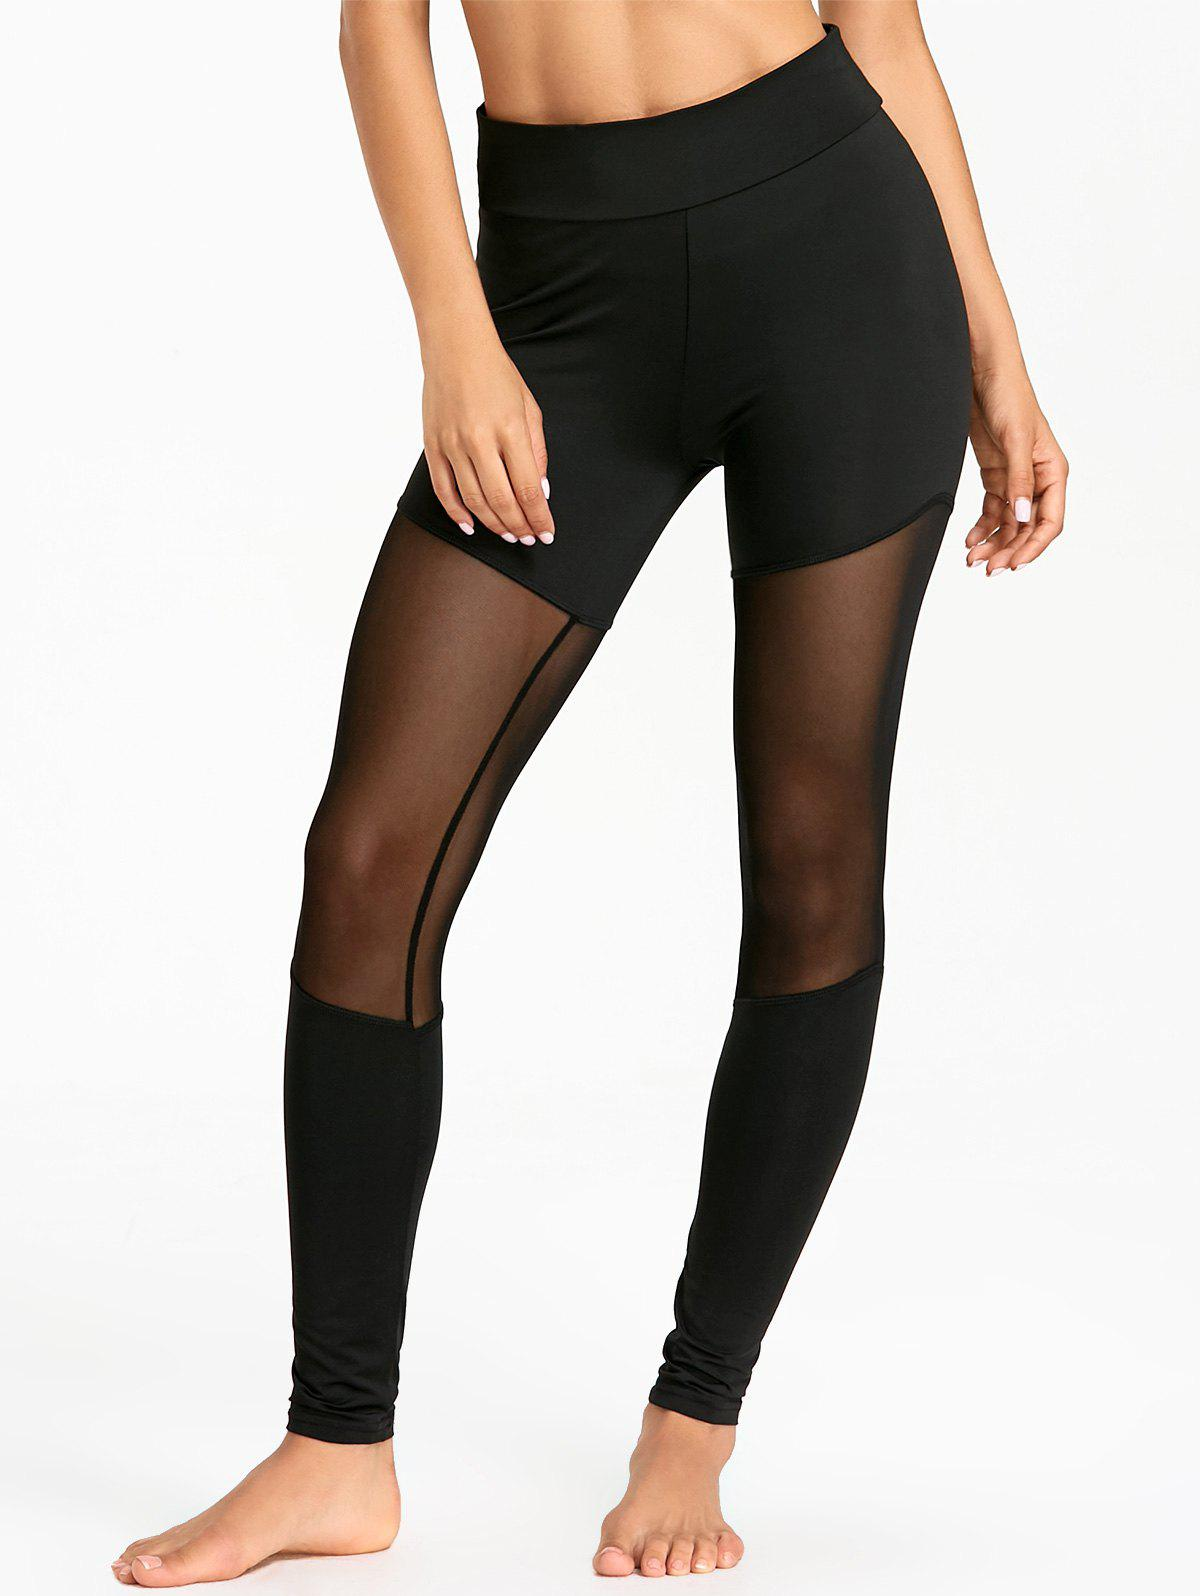 Sports Sheer Mesh Insert Leggings - BLACK M